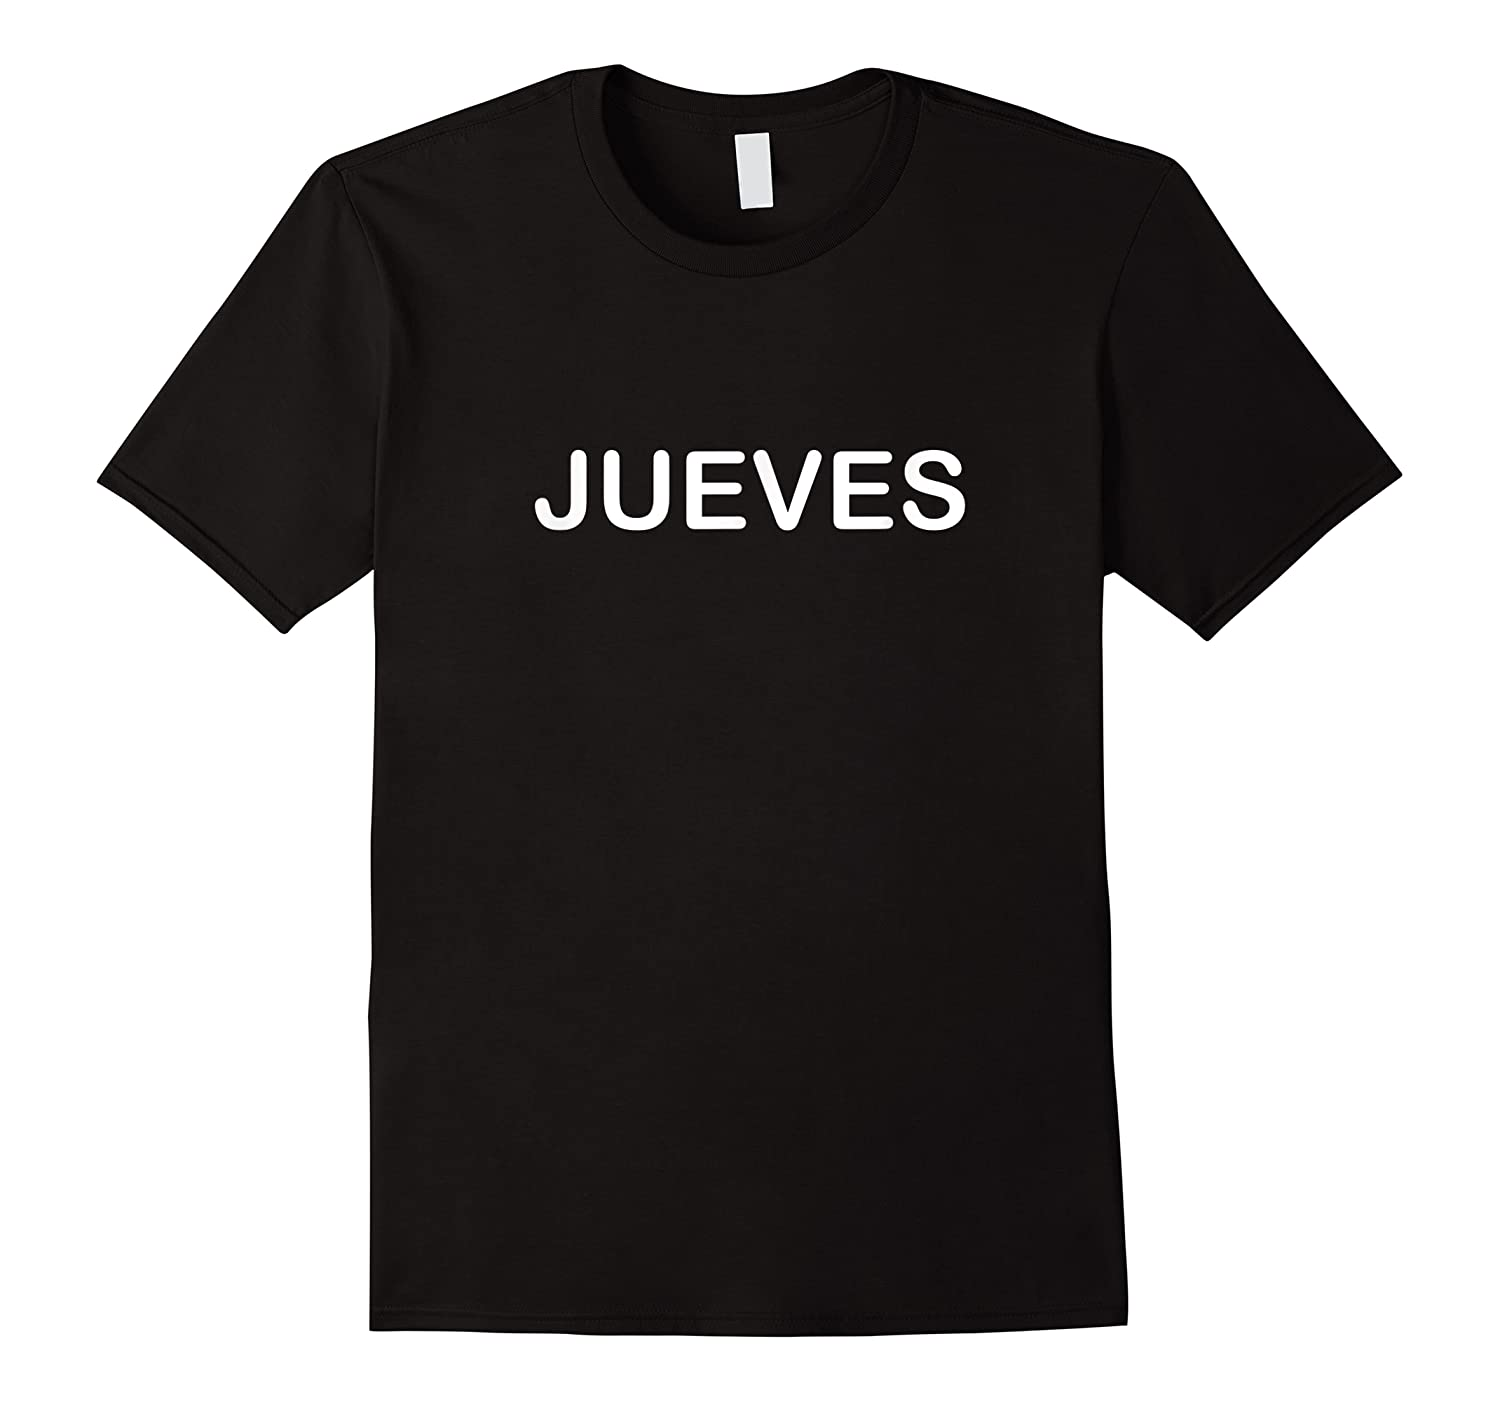 Thursday Day Of The Week In Spanish Jueves Shirts